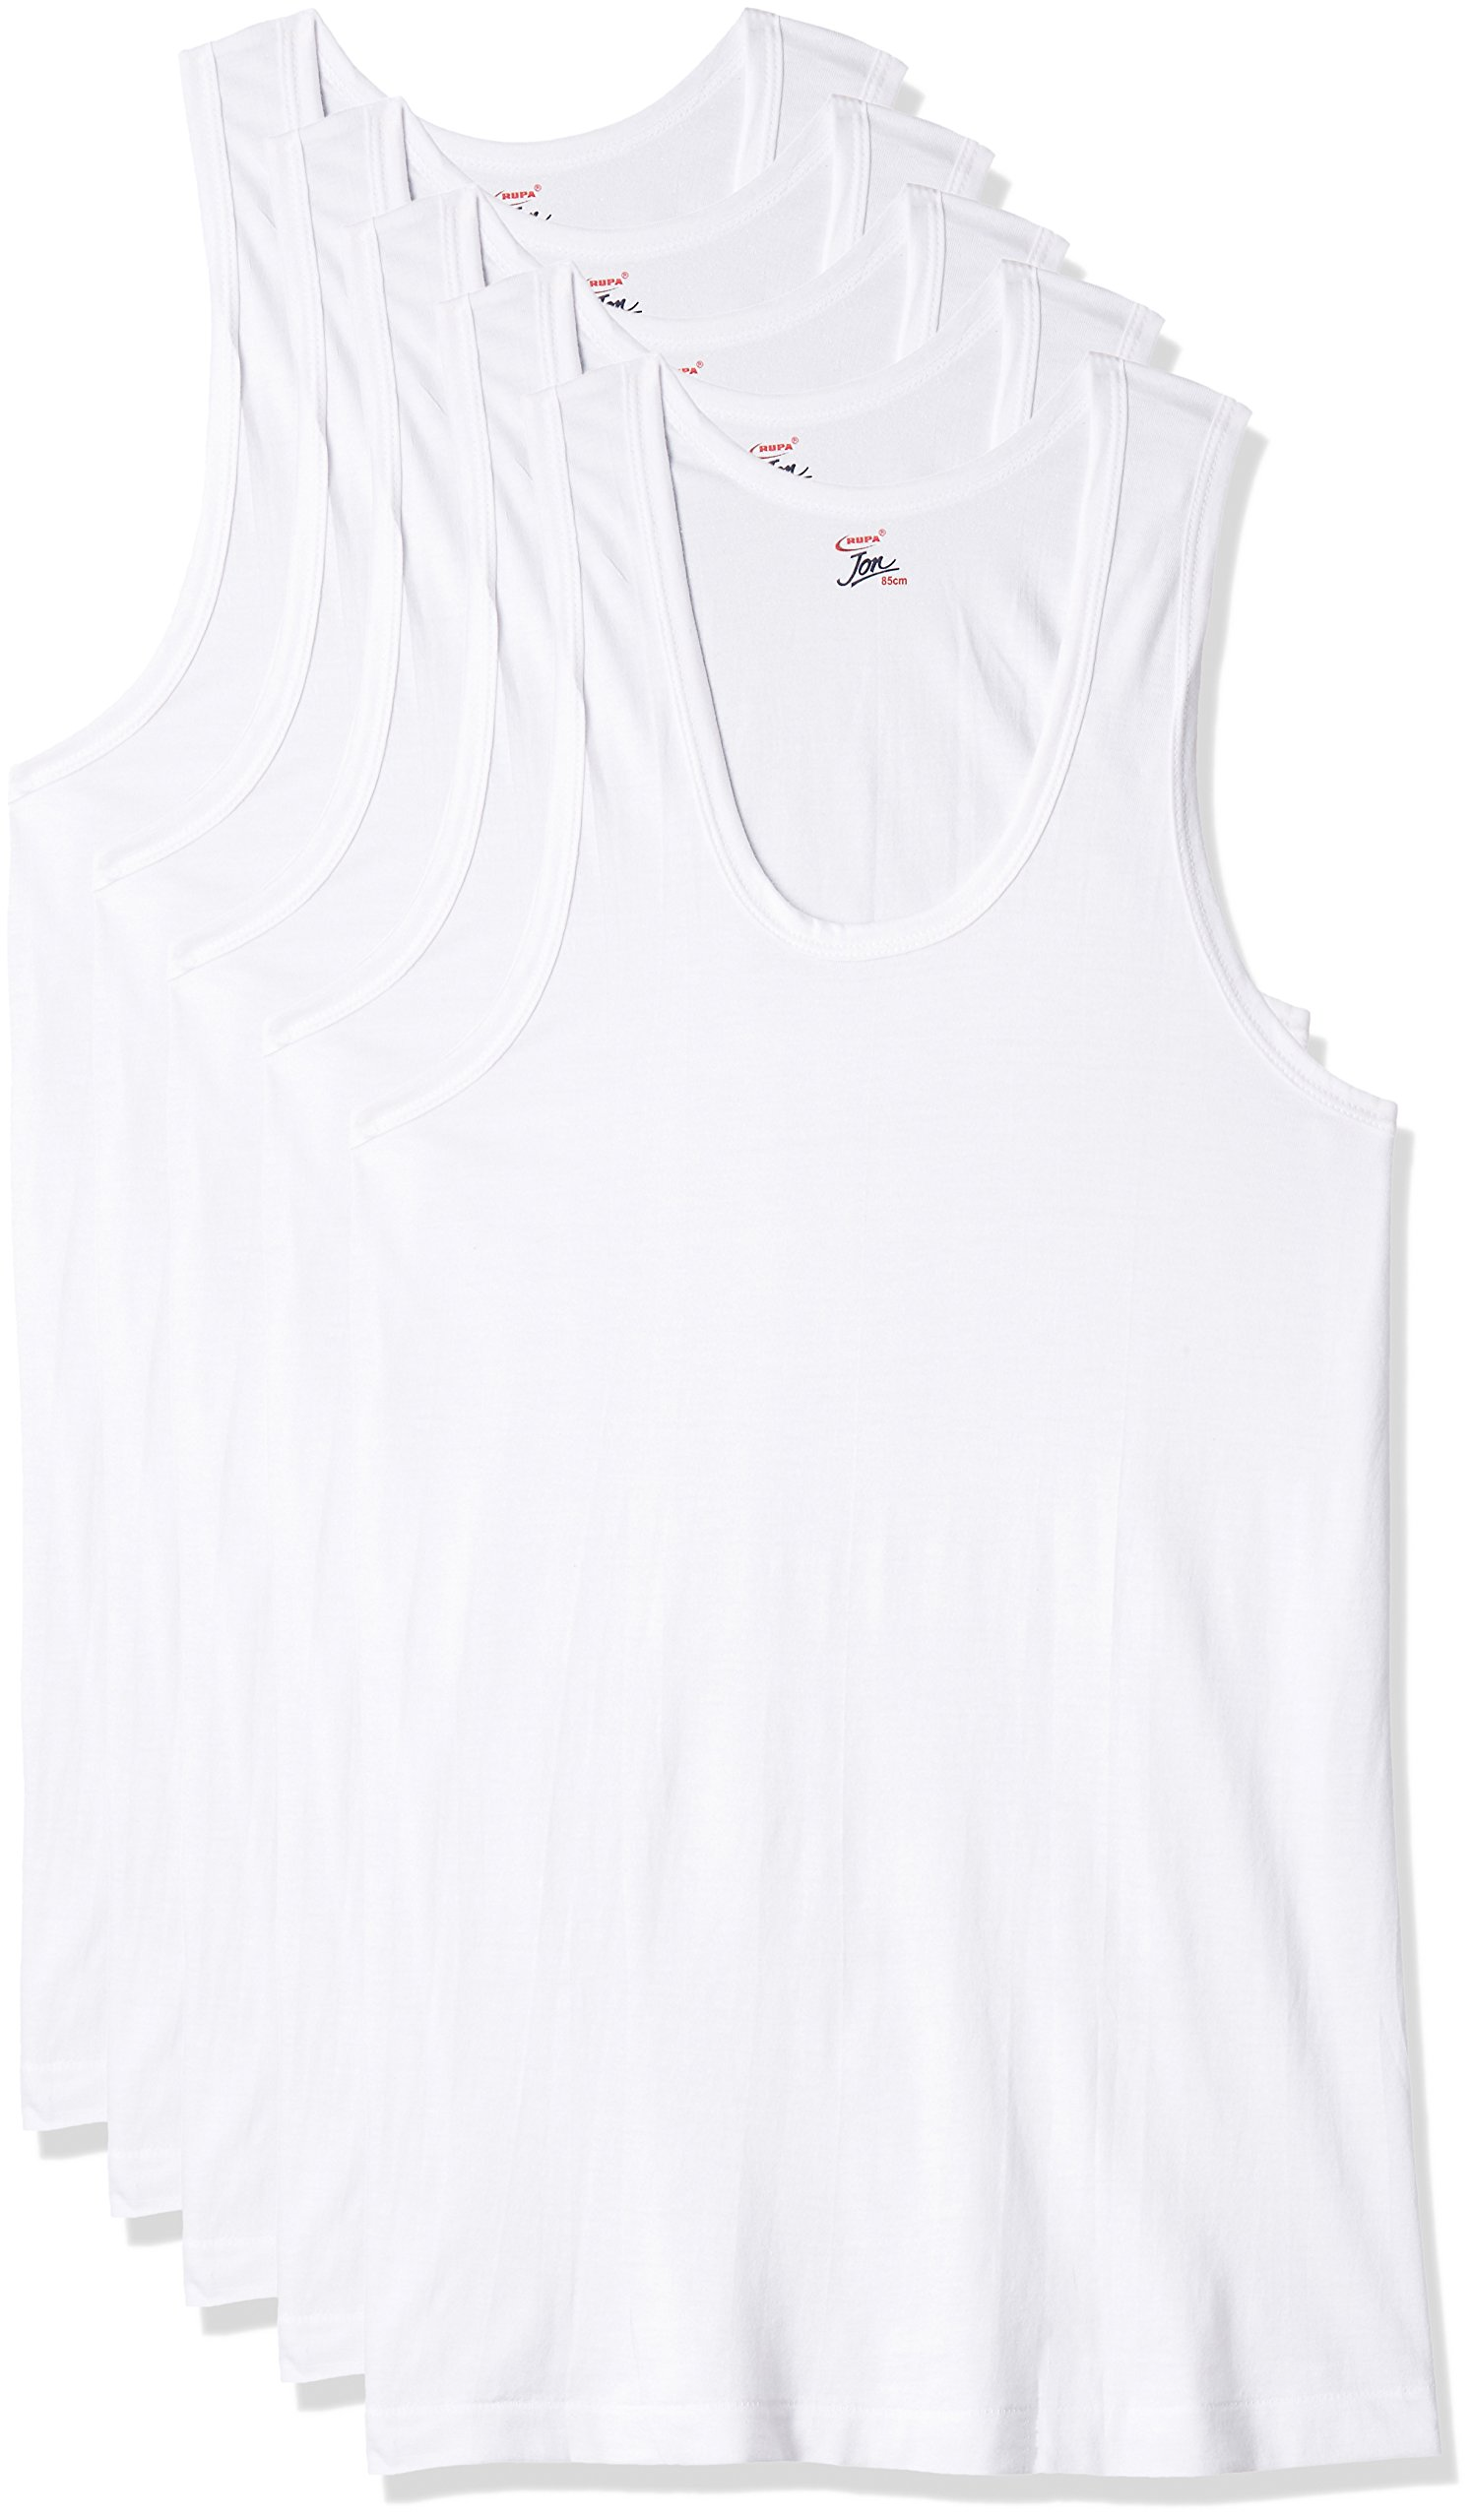 Rupa Jon Men's Cotton Vest product image